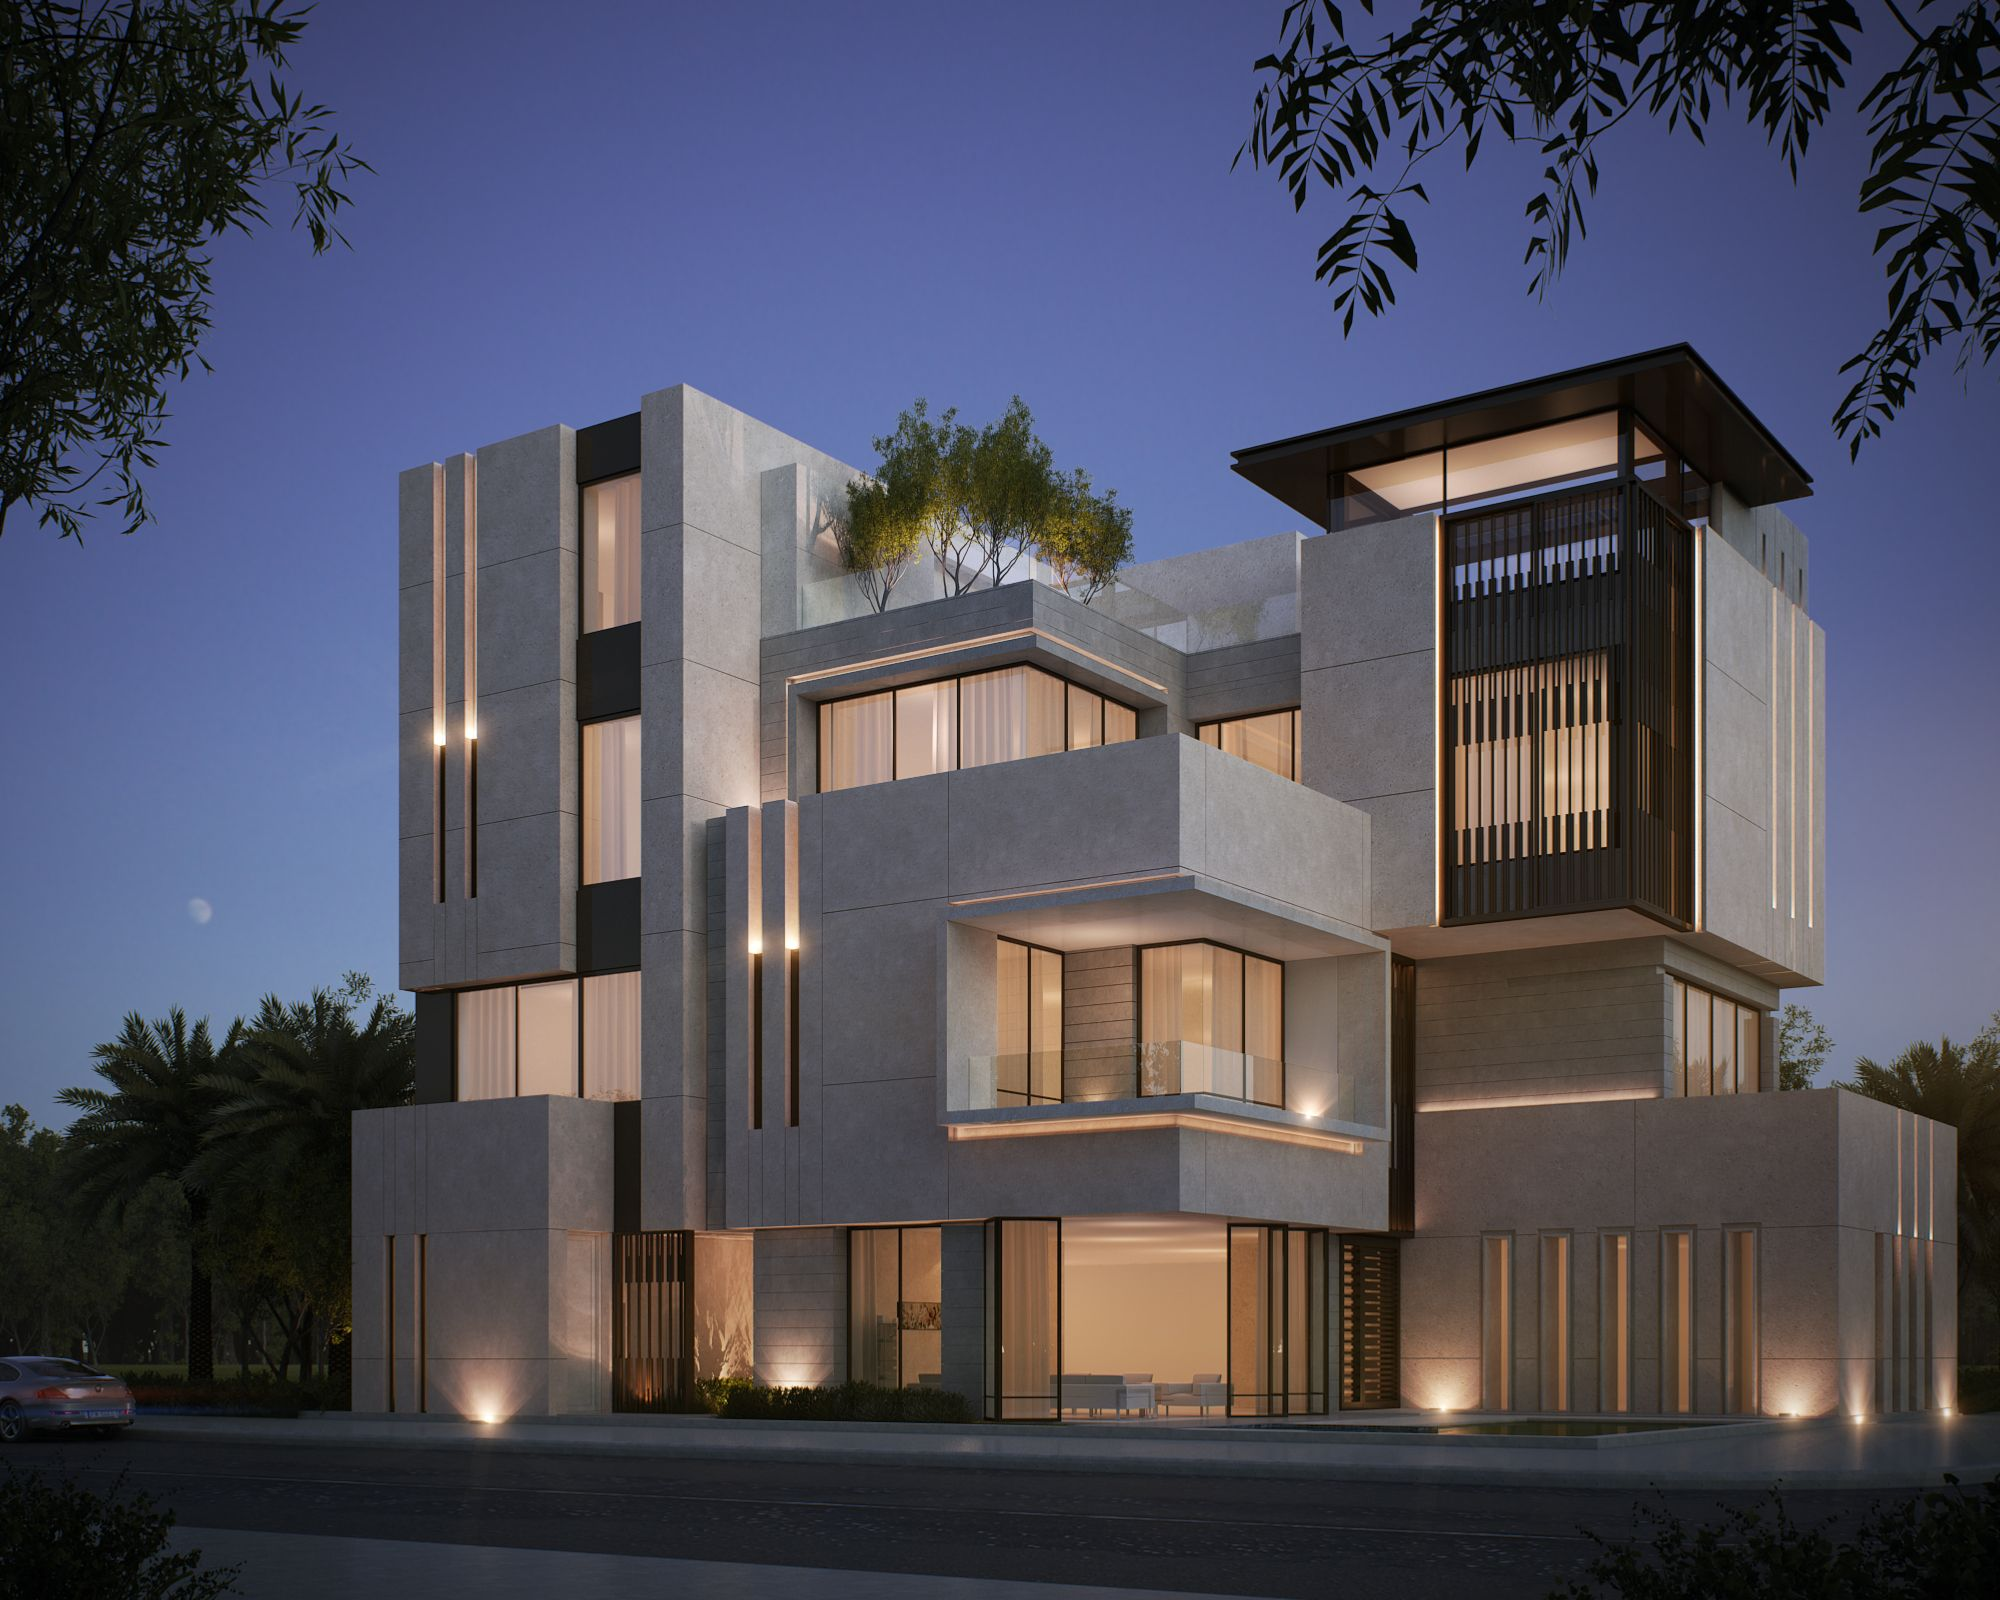 Private villa 500 m kuwait sarah sadeq architects sarah for Modern villa architecture design